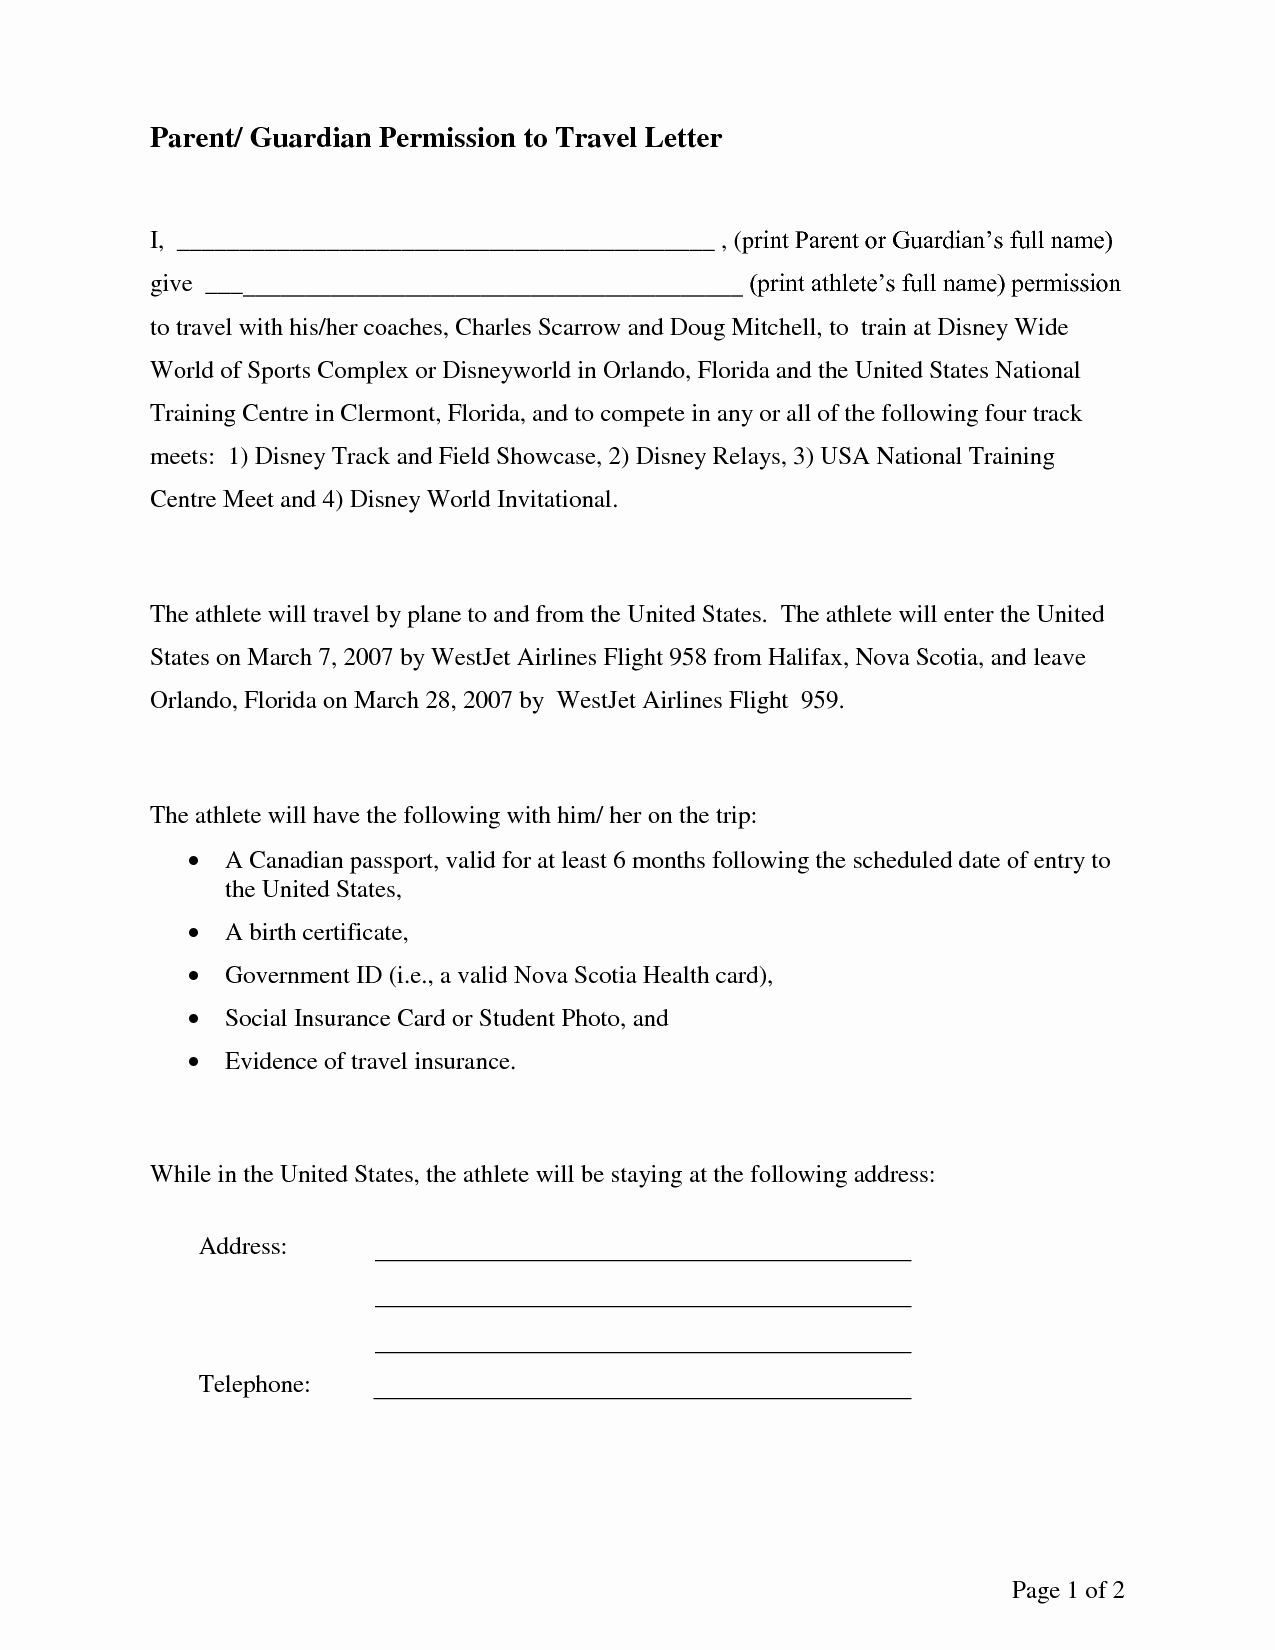 Child Visitation Letter Template - How to Write A Custody Letter for A Child Image Collections Letter